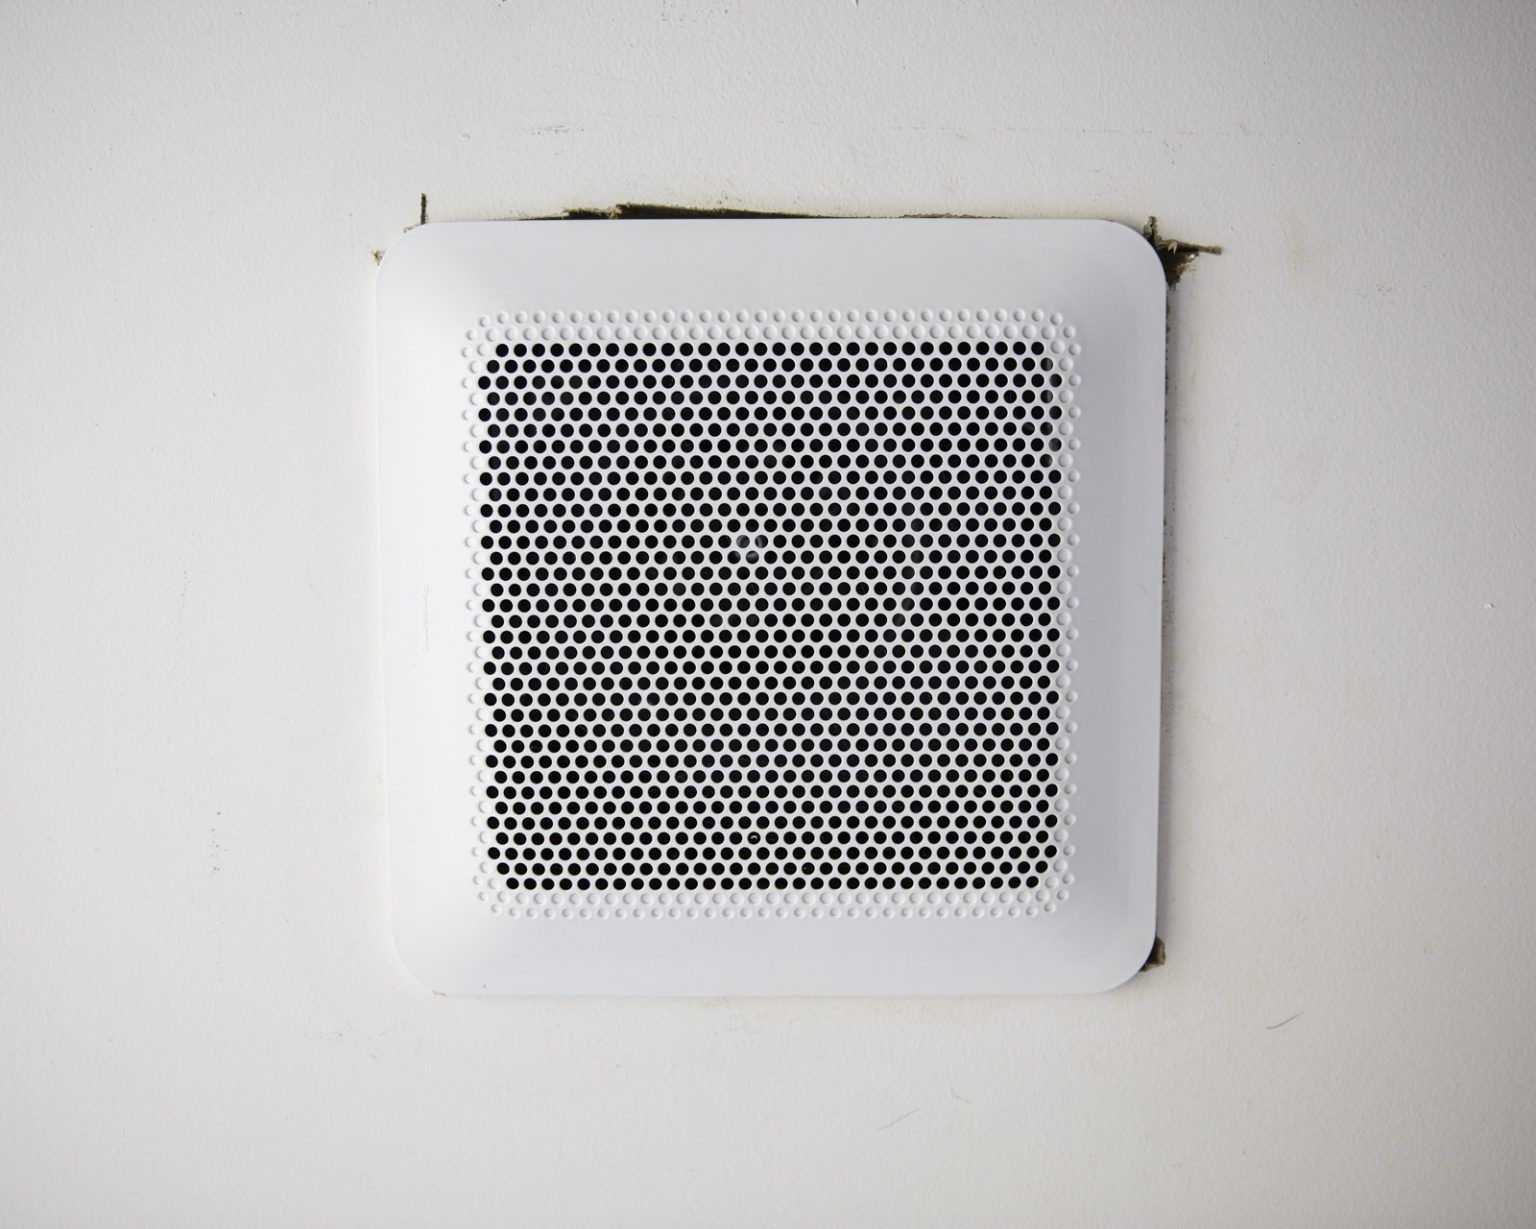 Bathroom Exhaust Fan Cover For Historic Homes House Of Brinson In 2021 Exhaust Fan Cover Bathroom Exhaust Fan Cover Exhaust Fan Bathroom exhaust fan cover